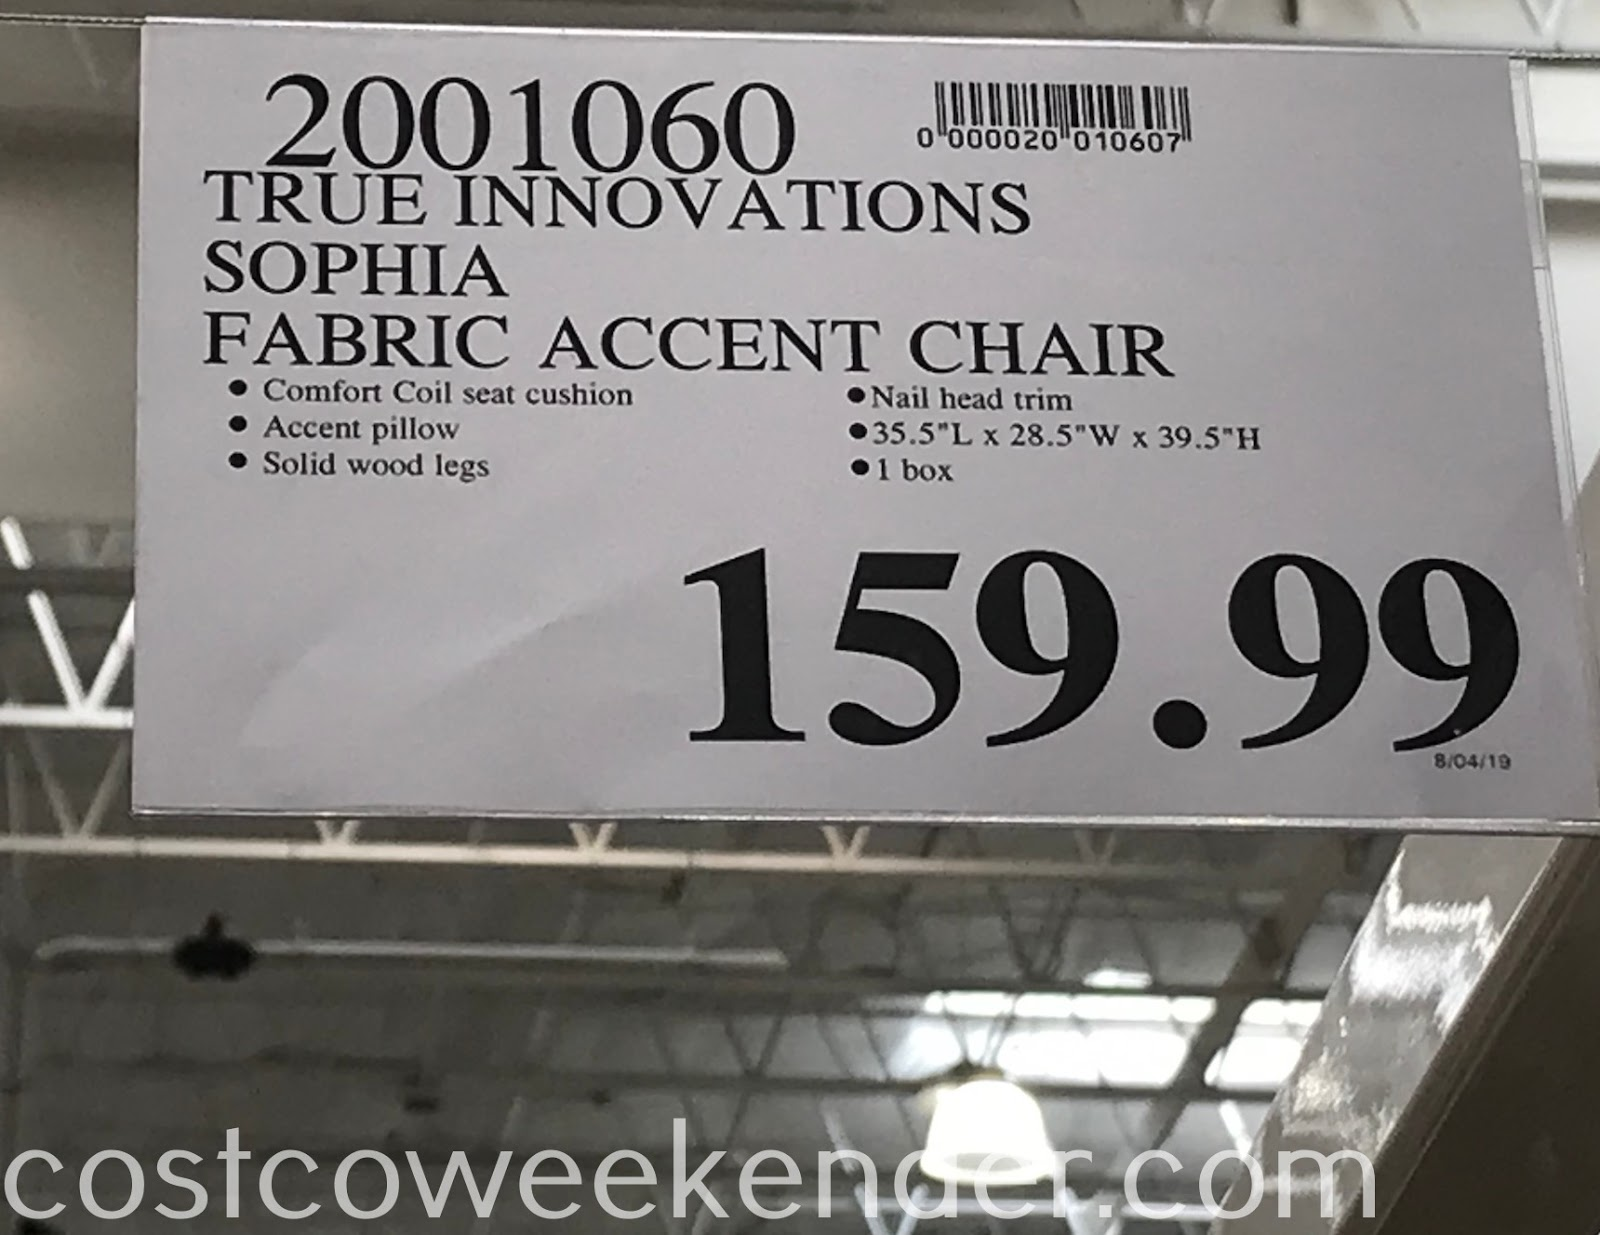 Deal for the True Innovations Sophia Fabric Accent Chair at Costco